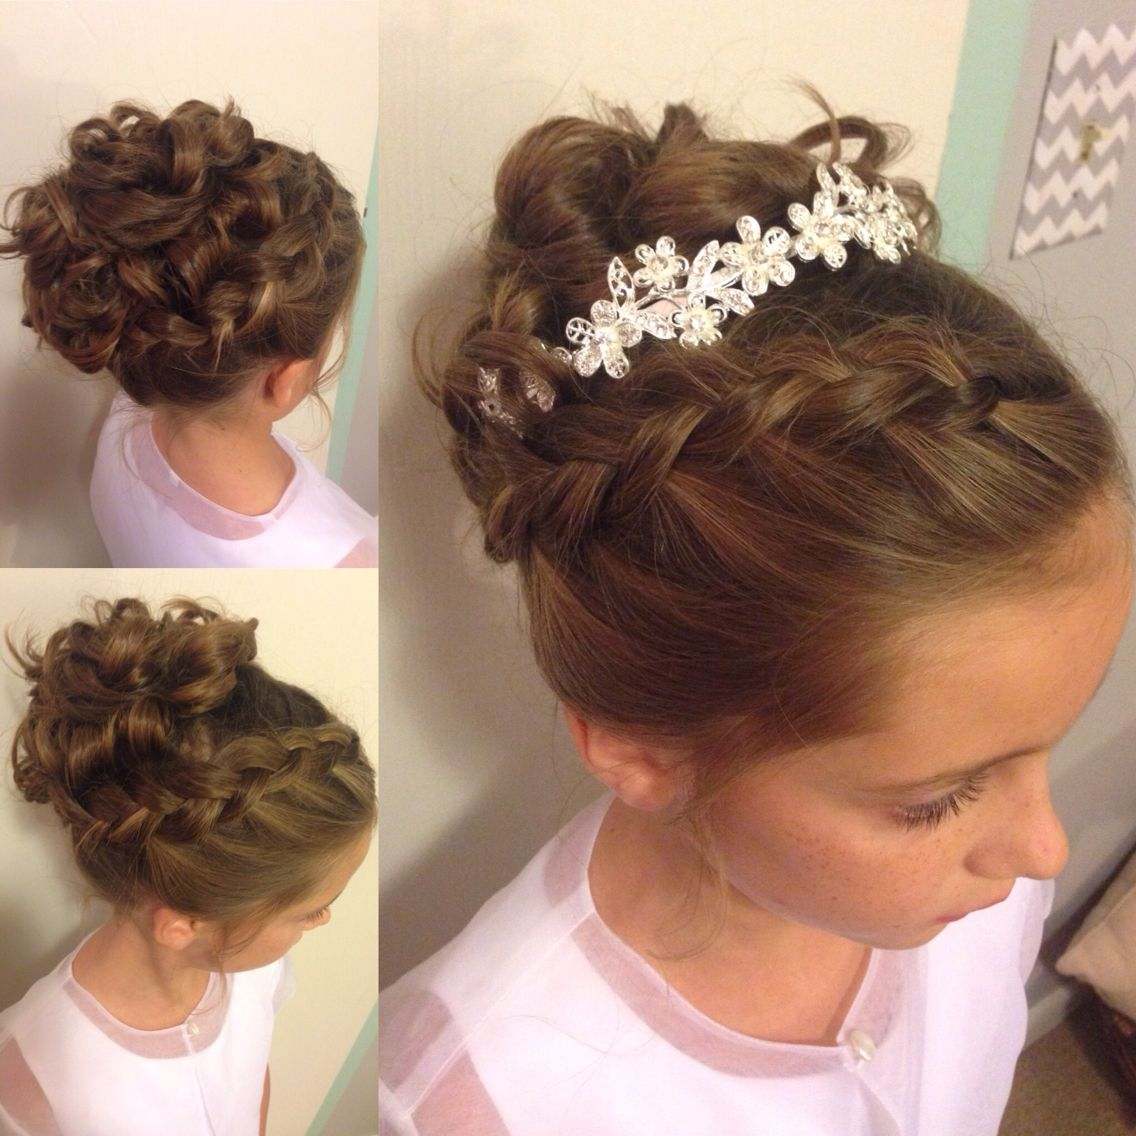 Hairstyles For Girls In Wedding: Little Girl Updo. Wedding Hairstyle Instagram